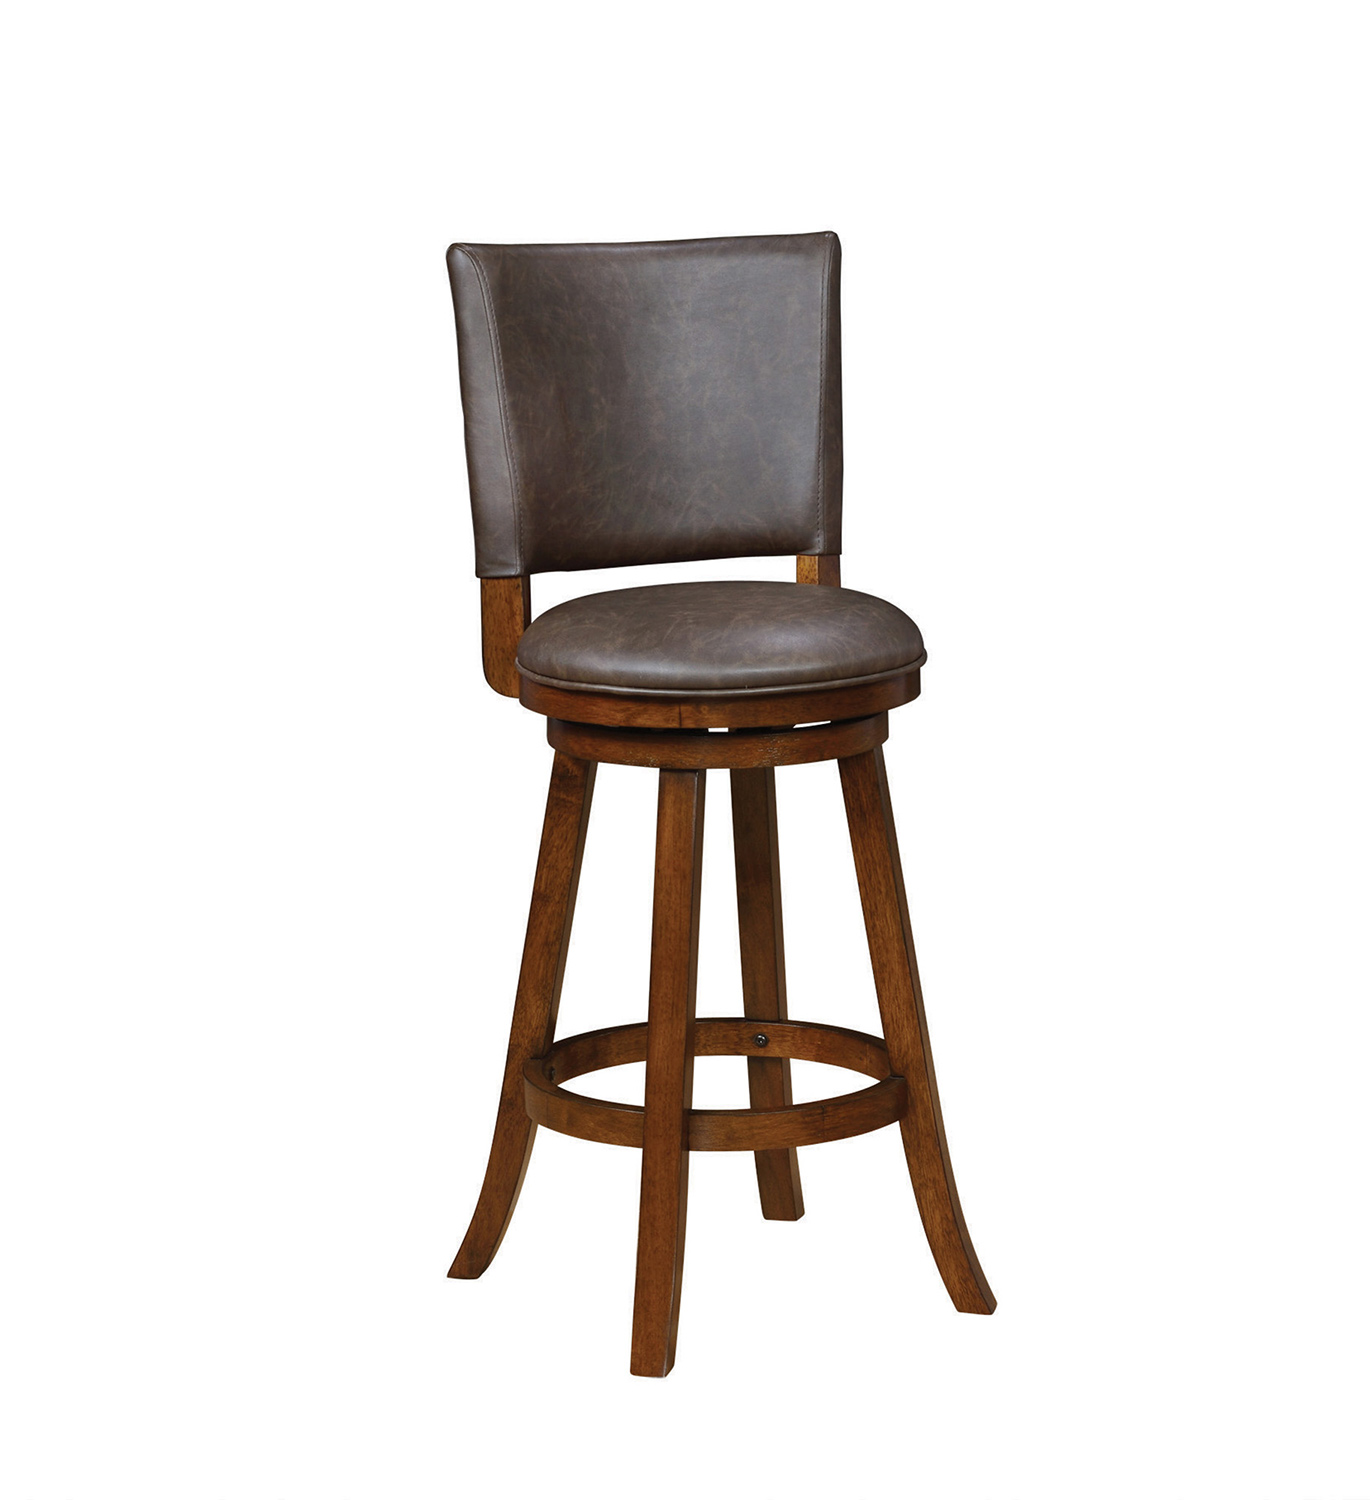 Coaster 104894 Swivel Bar Stool - Brown/Chestnut